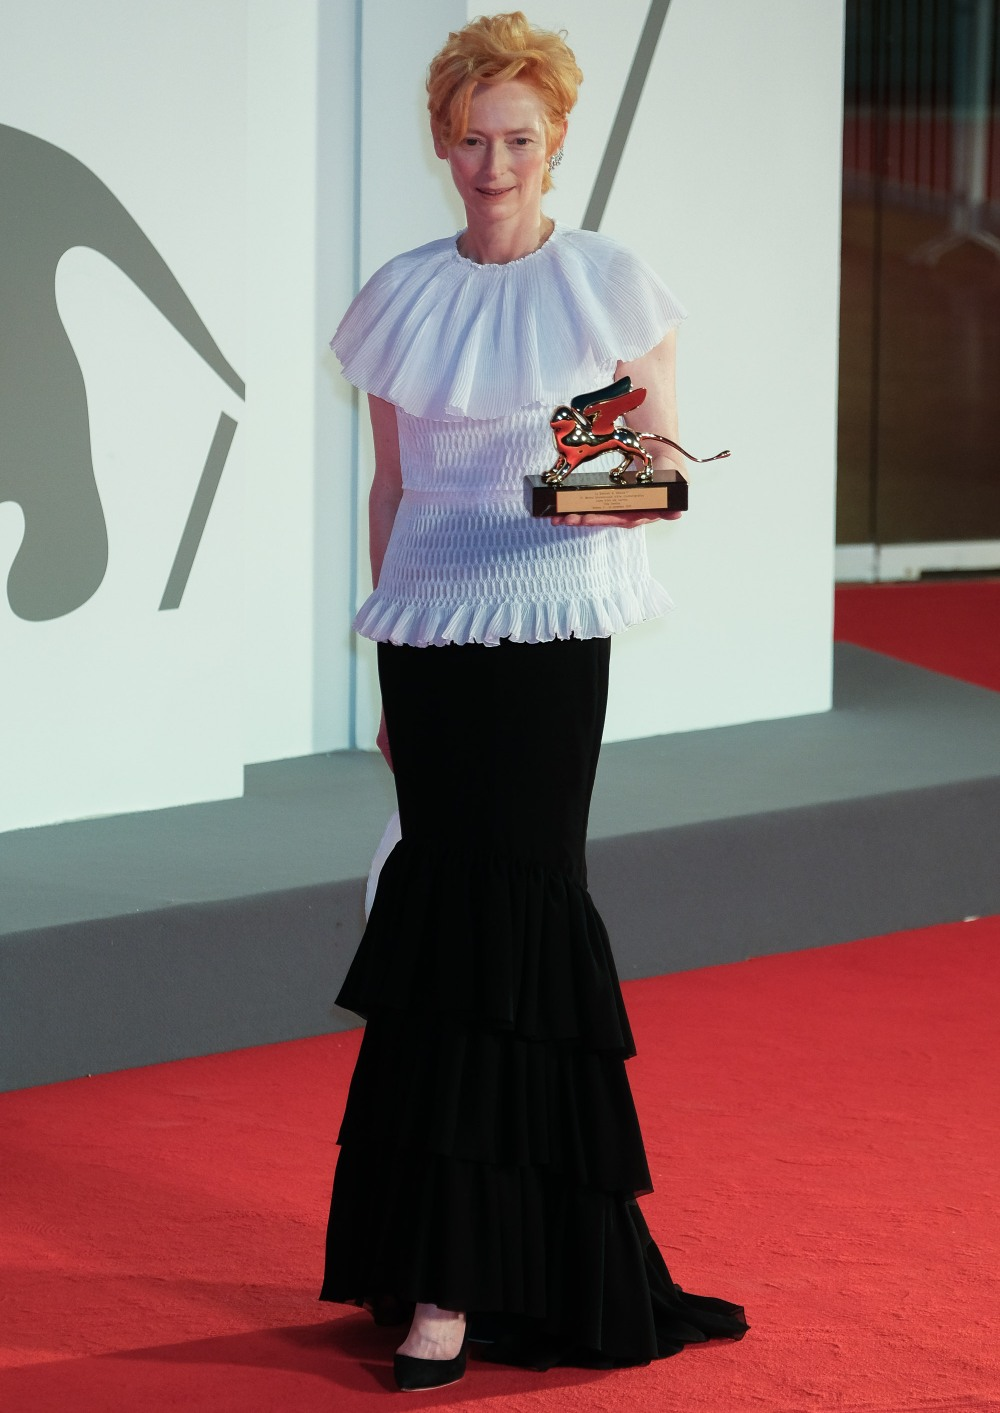 Tilda Swinton poses on the red carpet at Opening Ceremony for the 77th Venice International Film Festival ( Berlinale ) on Wednesday 2 September 2020